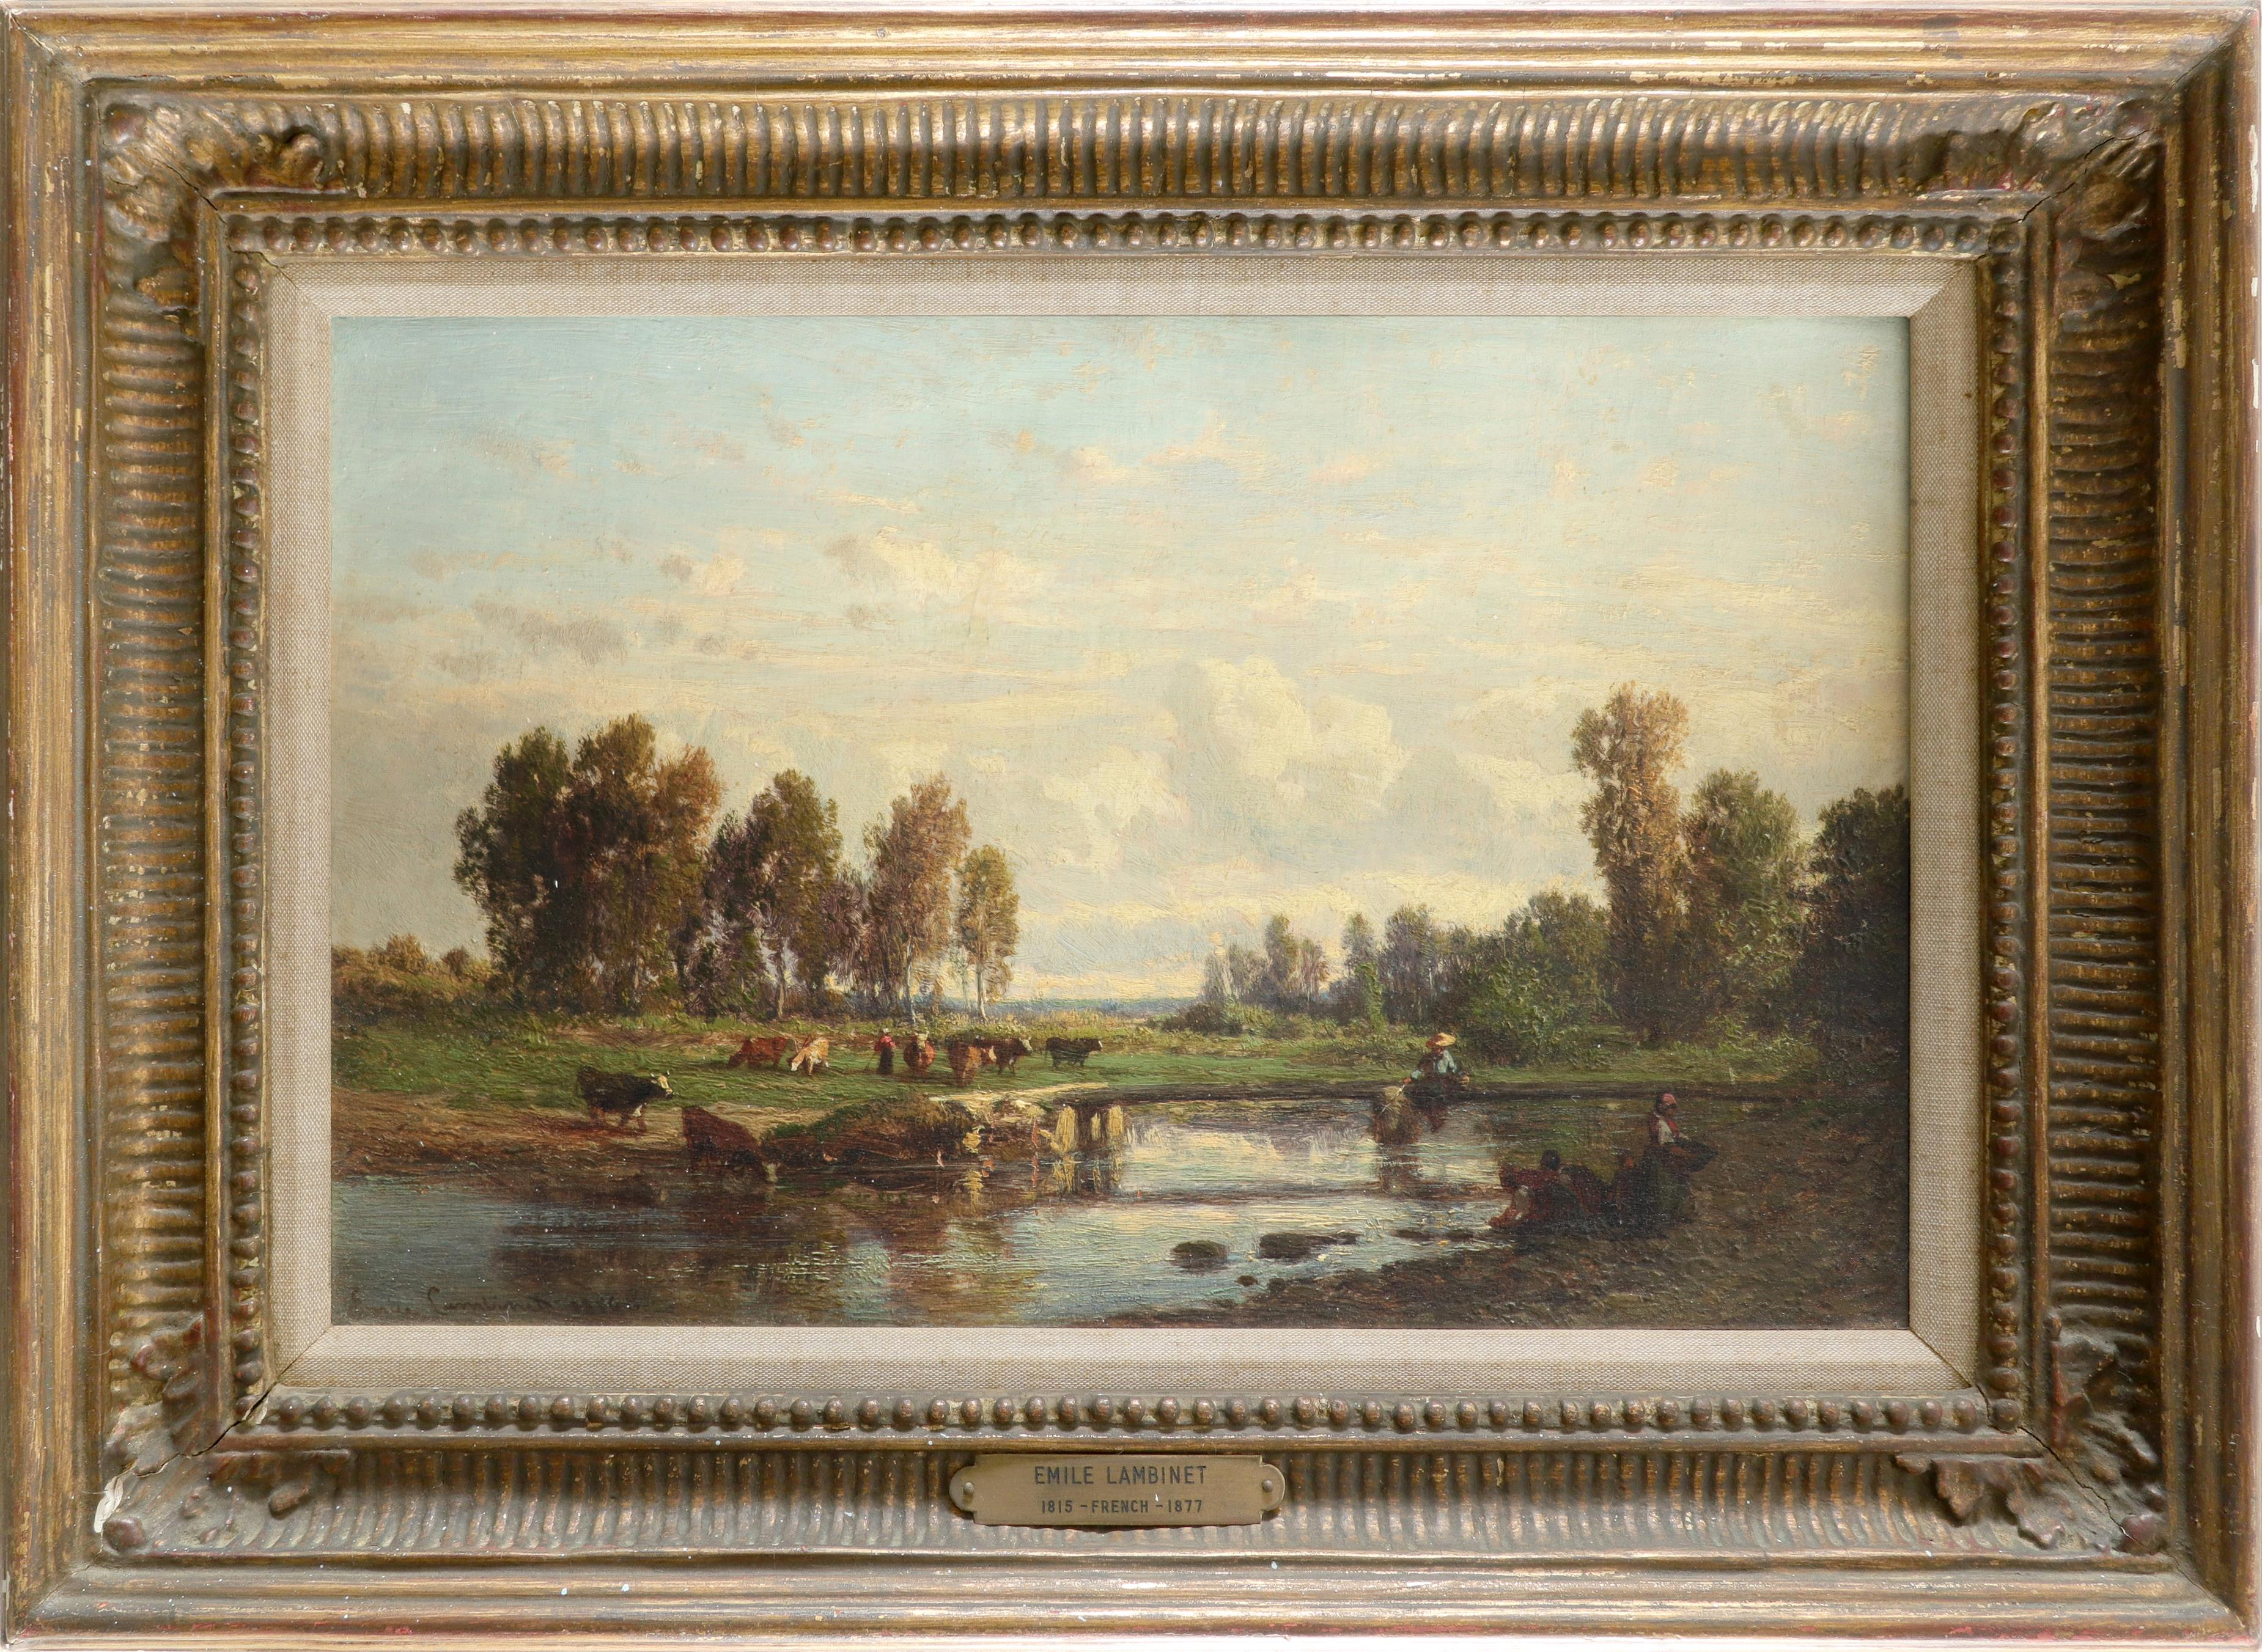 Émile Lambinet (French 1813-1877) Landscape with washerwomen by a river, and cattle grazing on the - Image 2 of 3